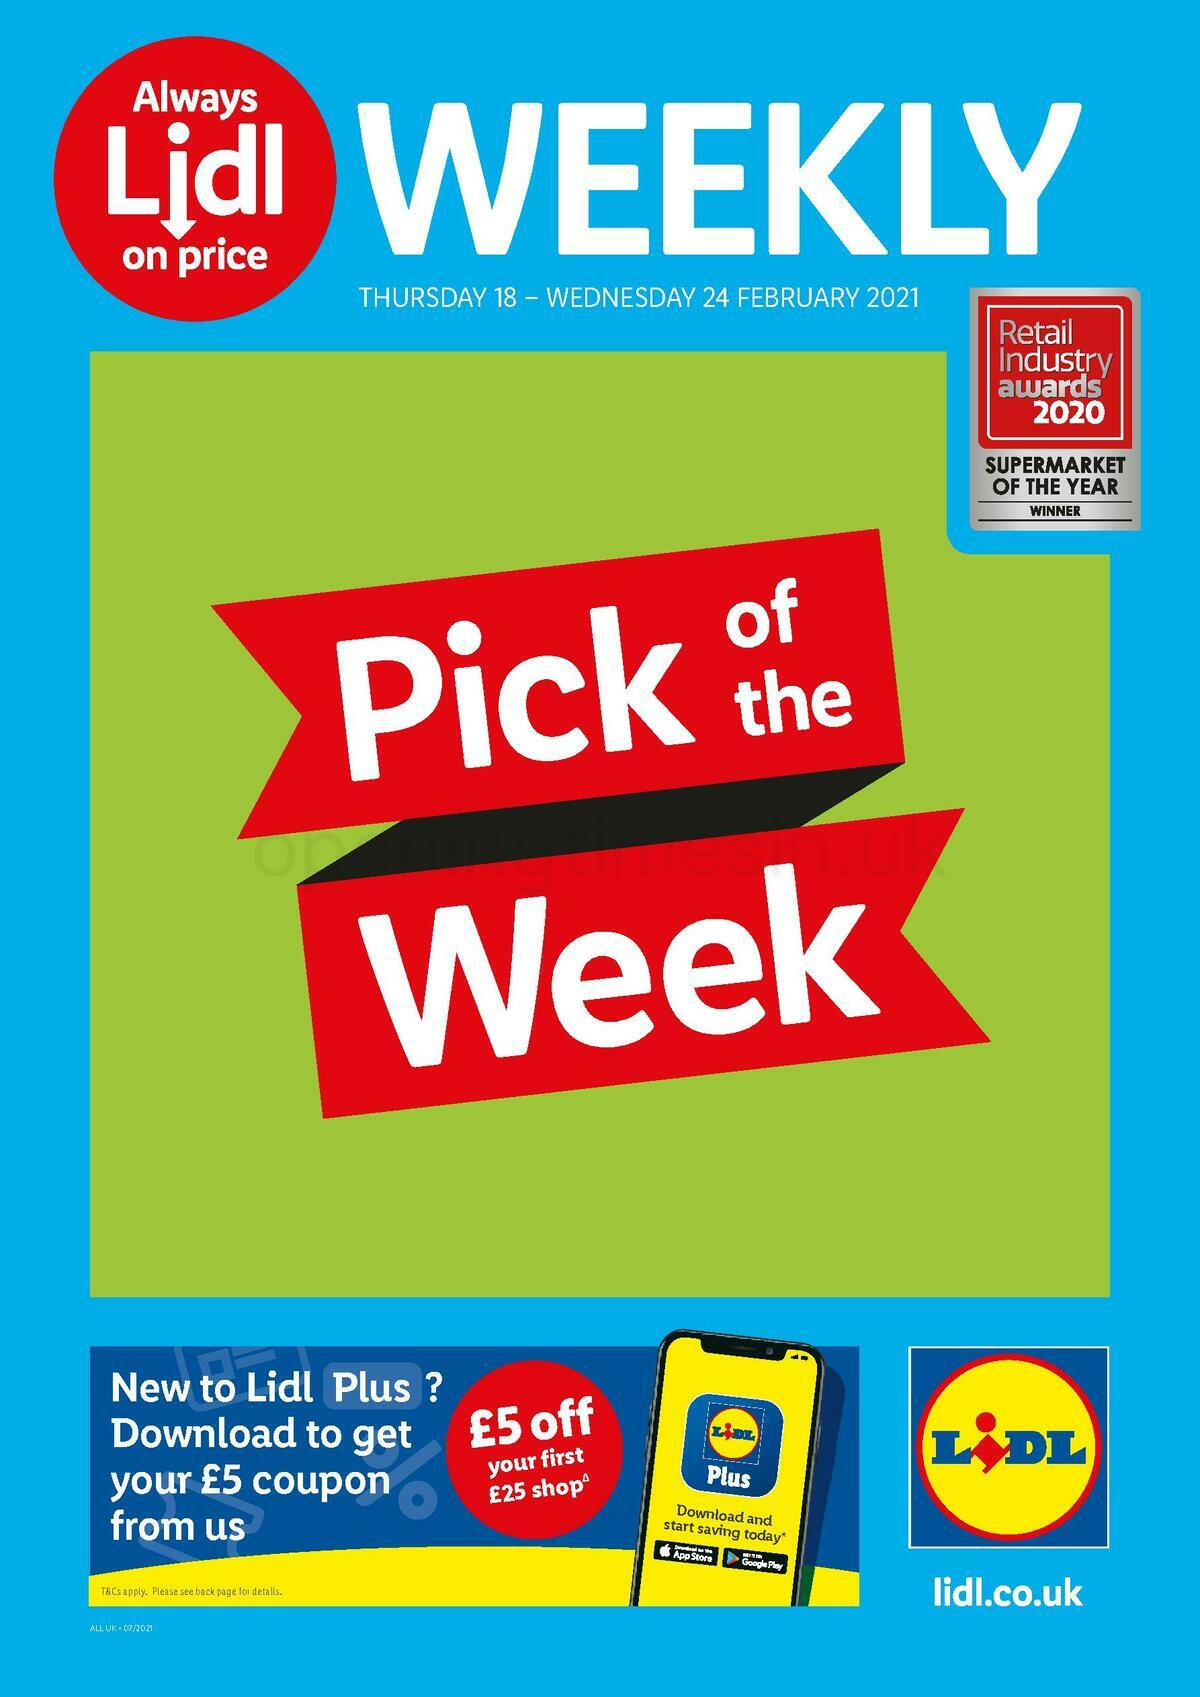 LIDL Offers from February 18